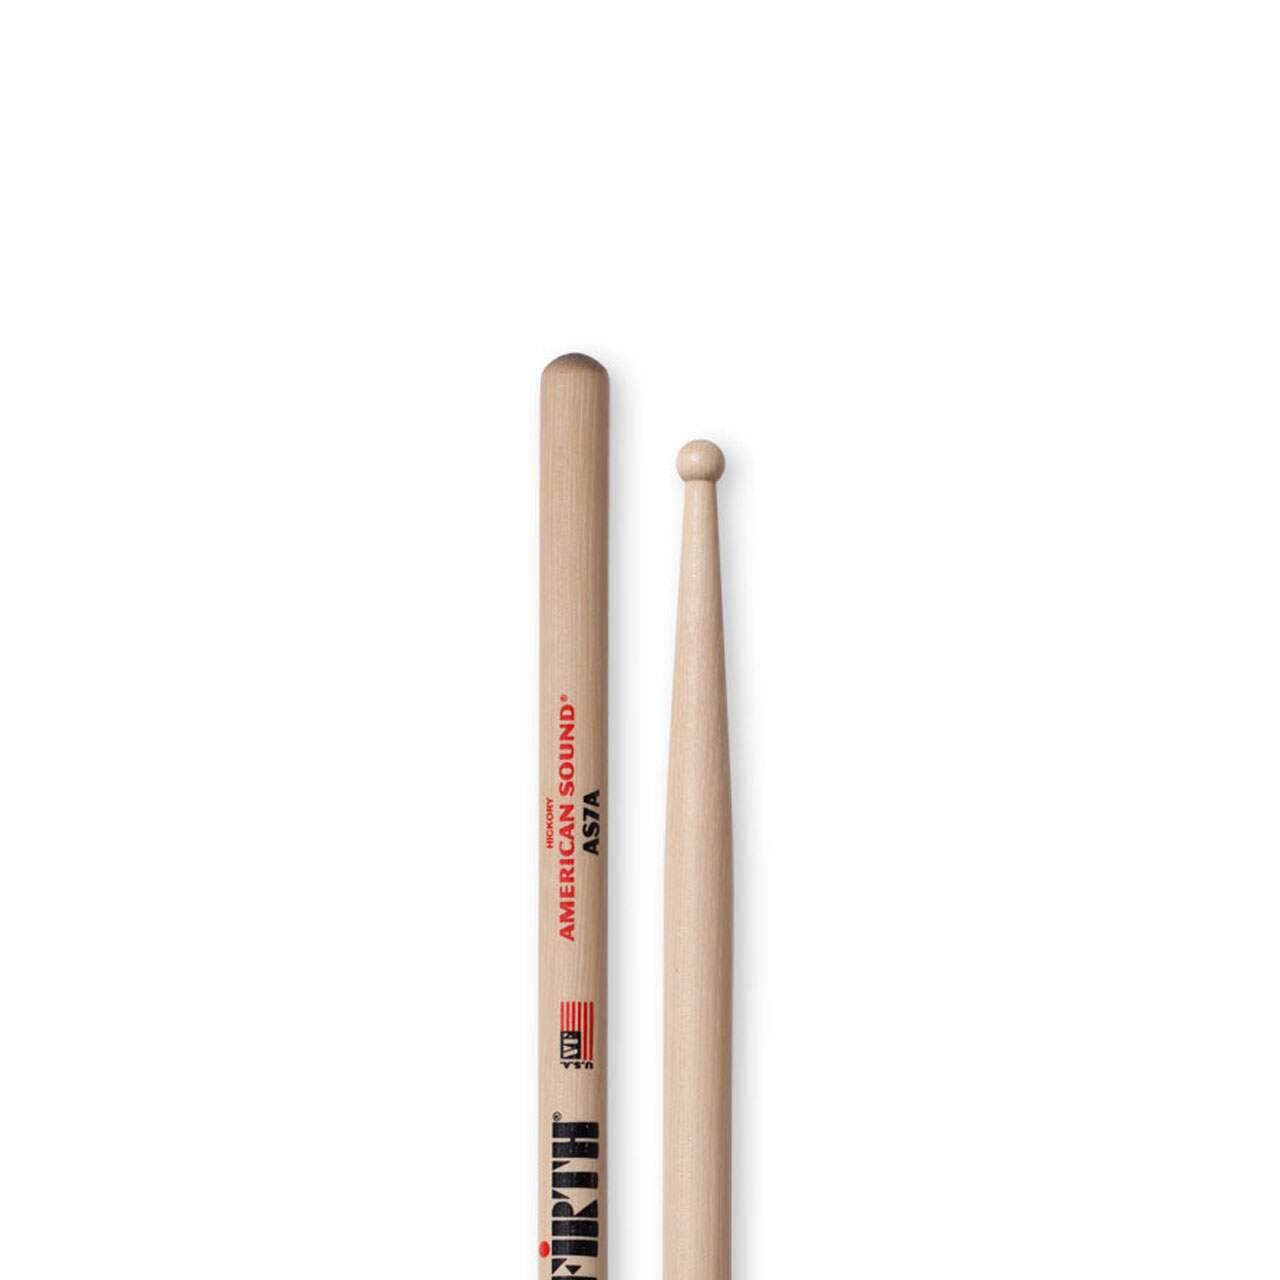 Baqueta American Sound 7a Ponta De Madeira As7a Vic Firth